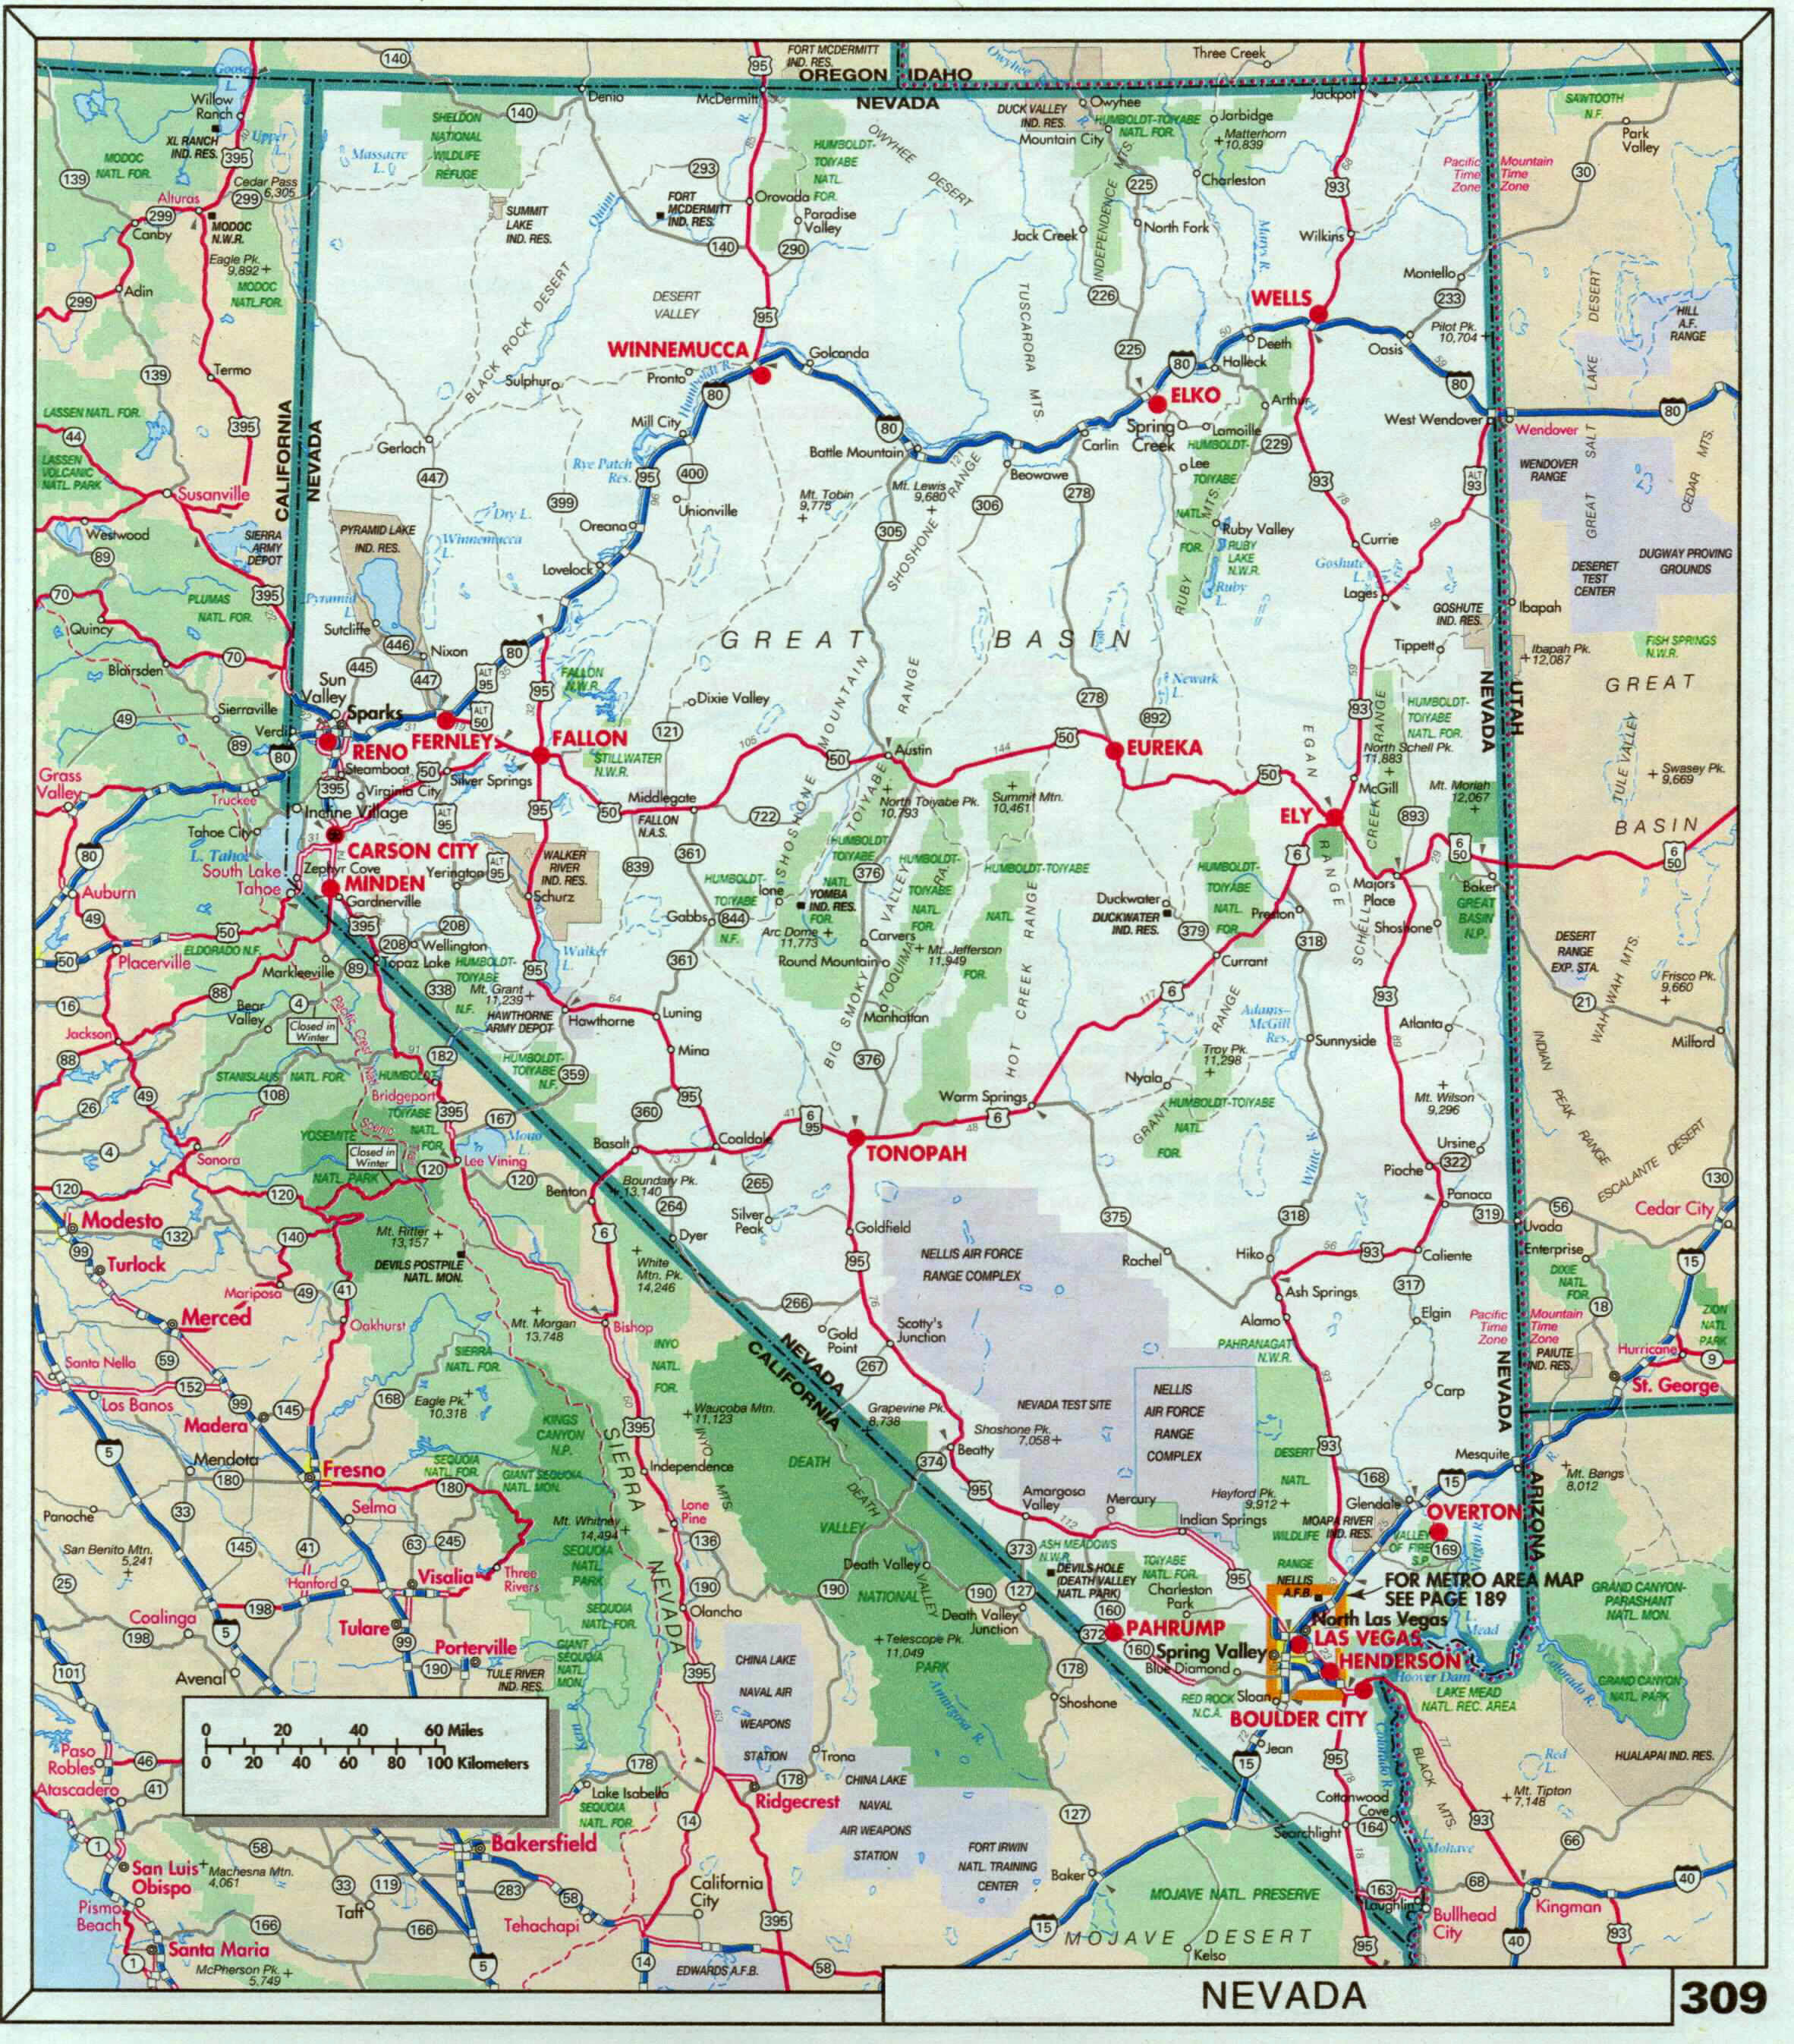 Nevada State Maps USA Maps Of Nevada NV Nevada State Outline Set - Map west usa national parks